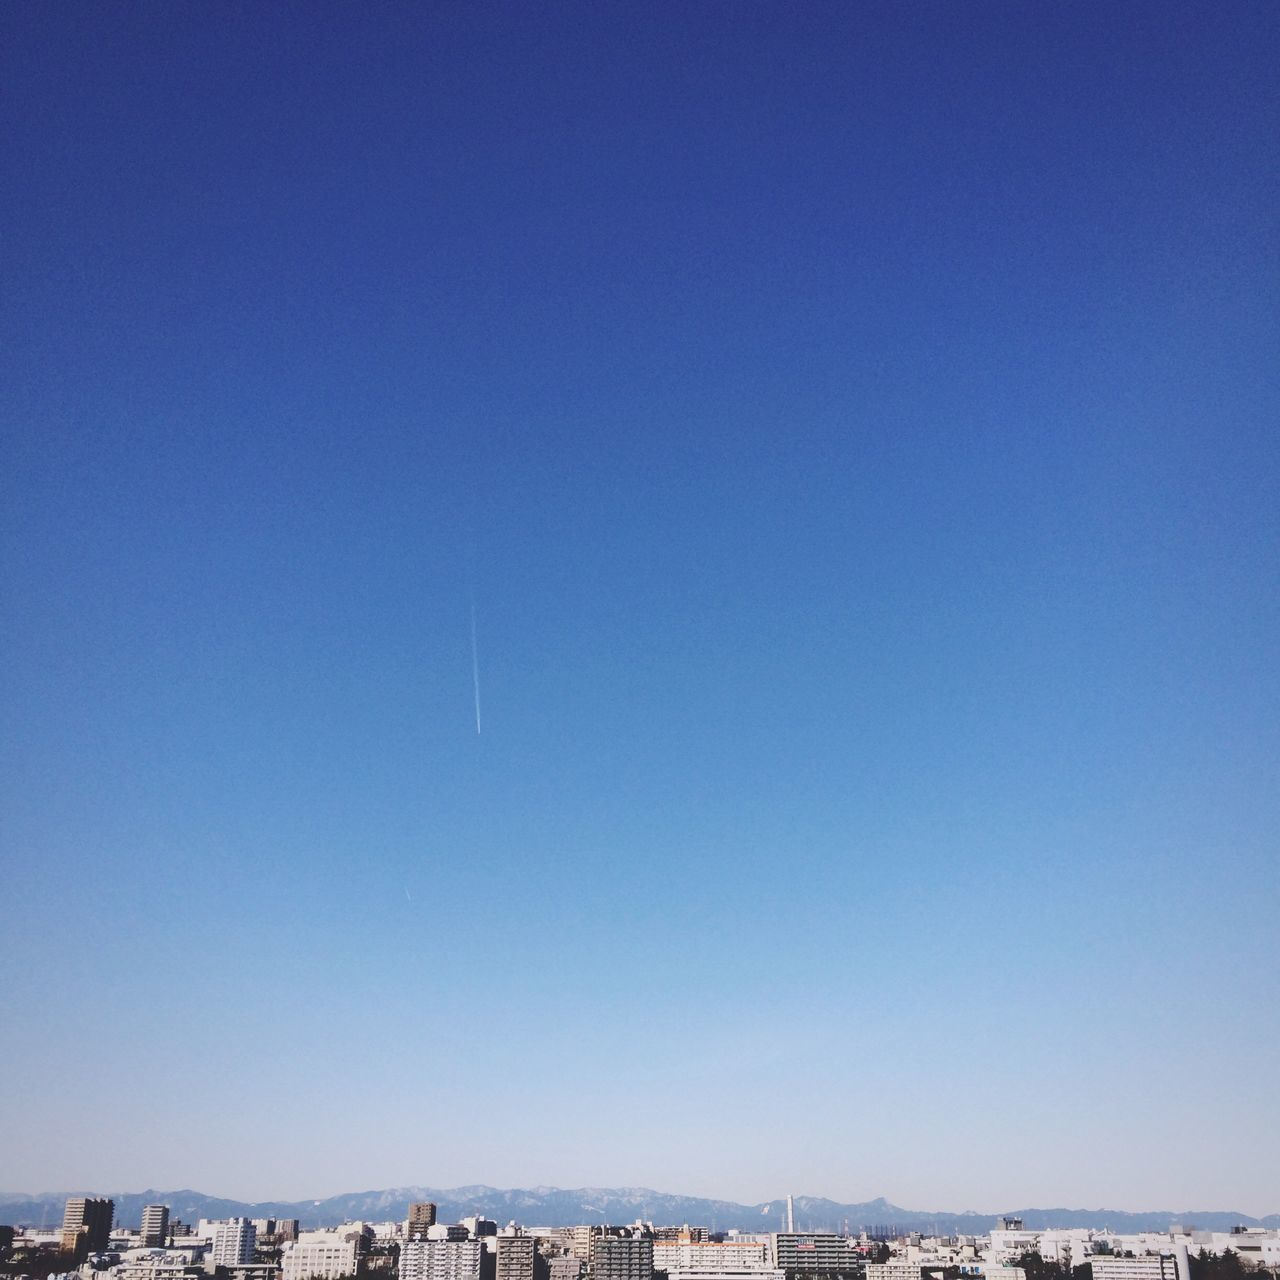 clear sky, blue, copy space, architecture, building exterior, cityscape, city, no people, outdoors, built structure, airplane, day, vapor trail, scenics, nature, flying, beauty in nature, sky, contrail